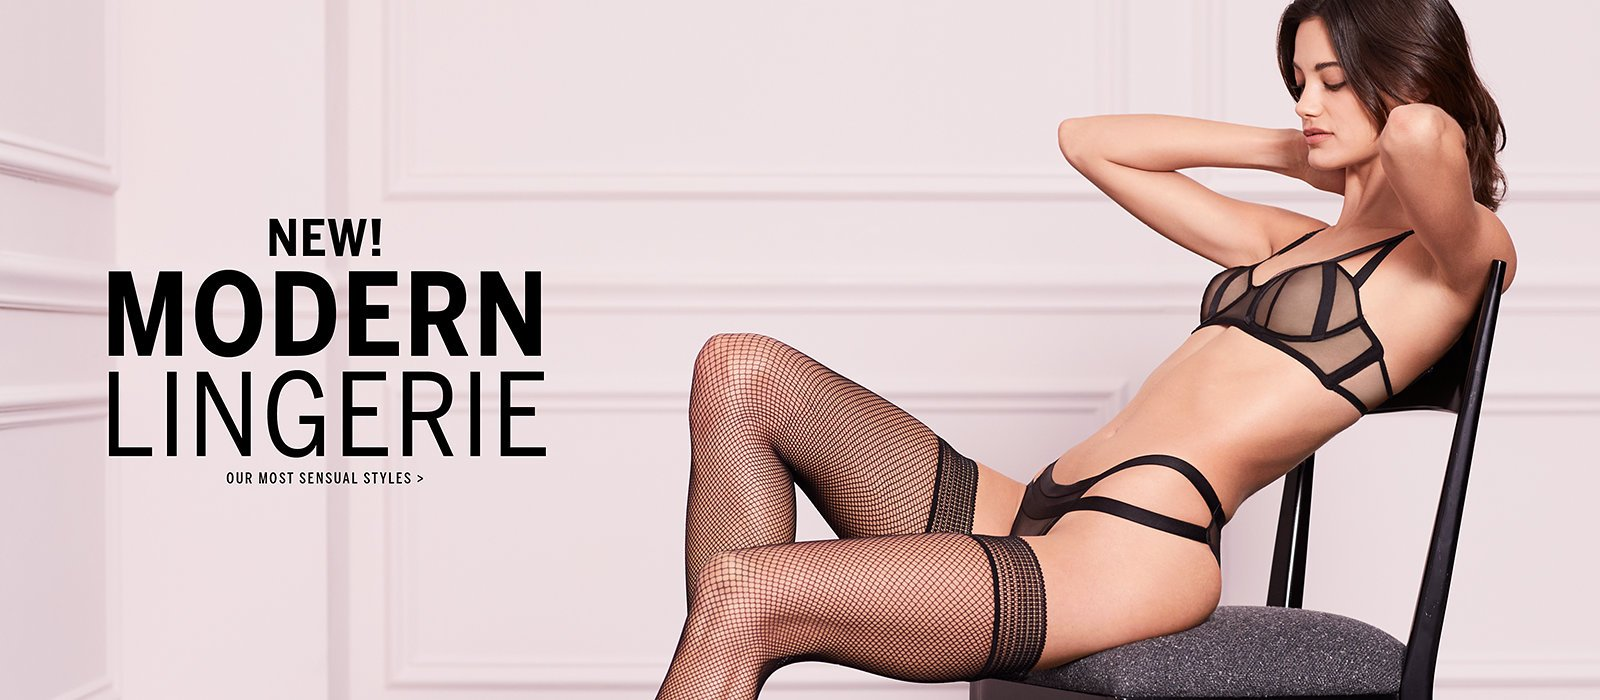 eece636e6f3 Modern Lingerie. Click for our most sensual styles.